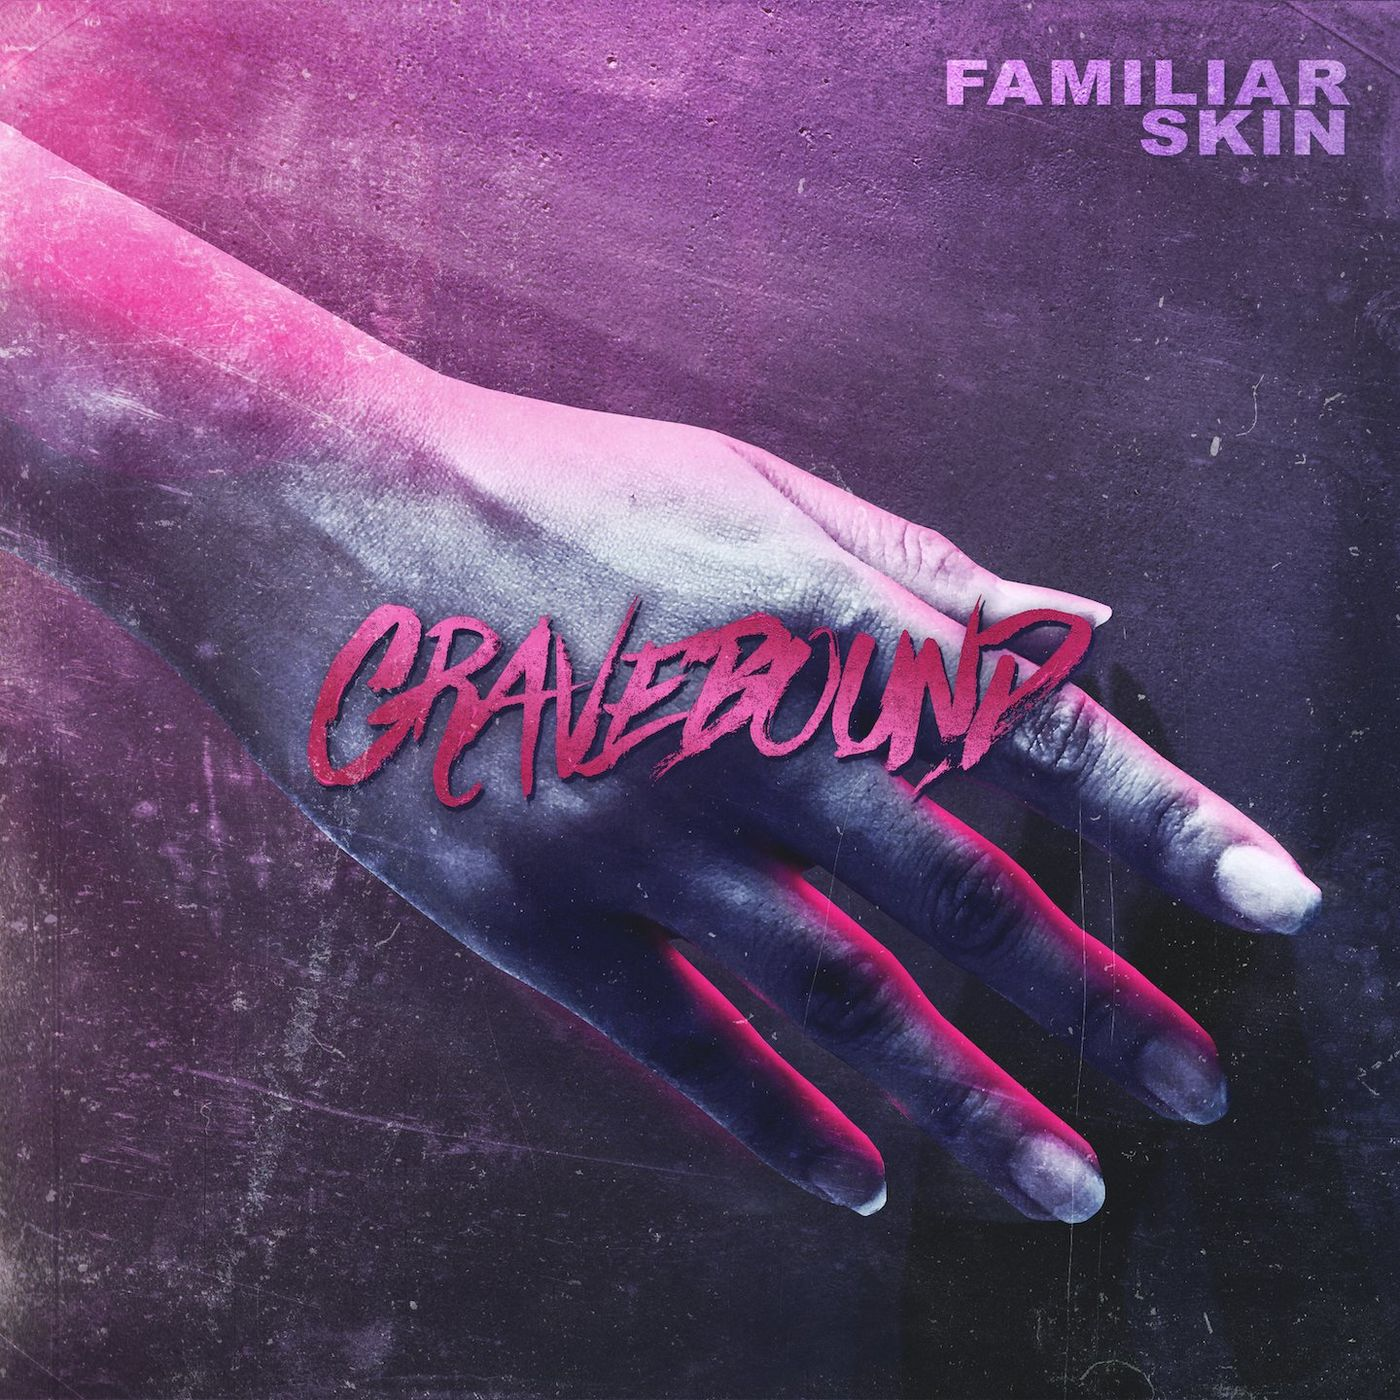 GraveBound - Familiar Skin [single] (2021)